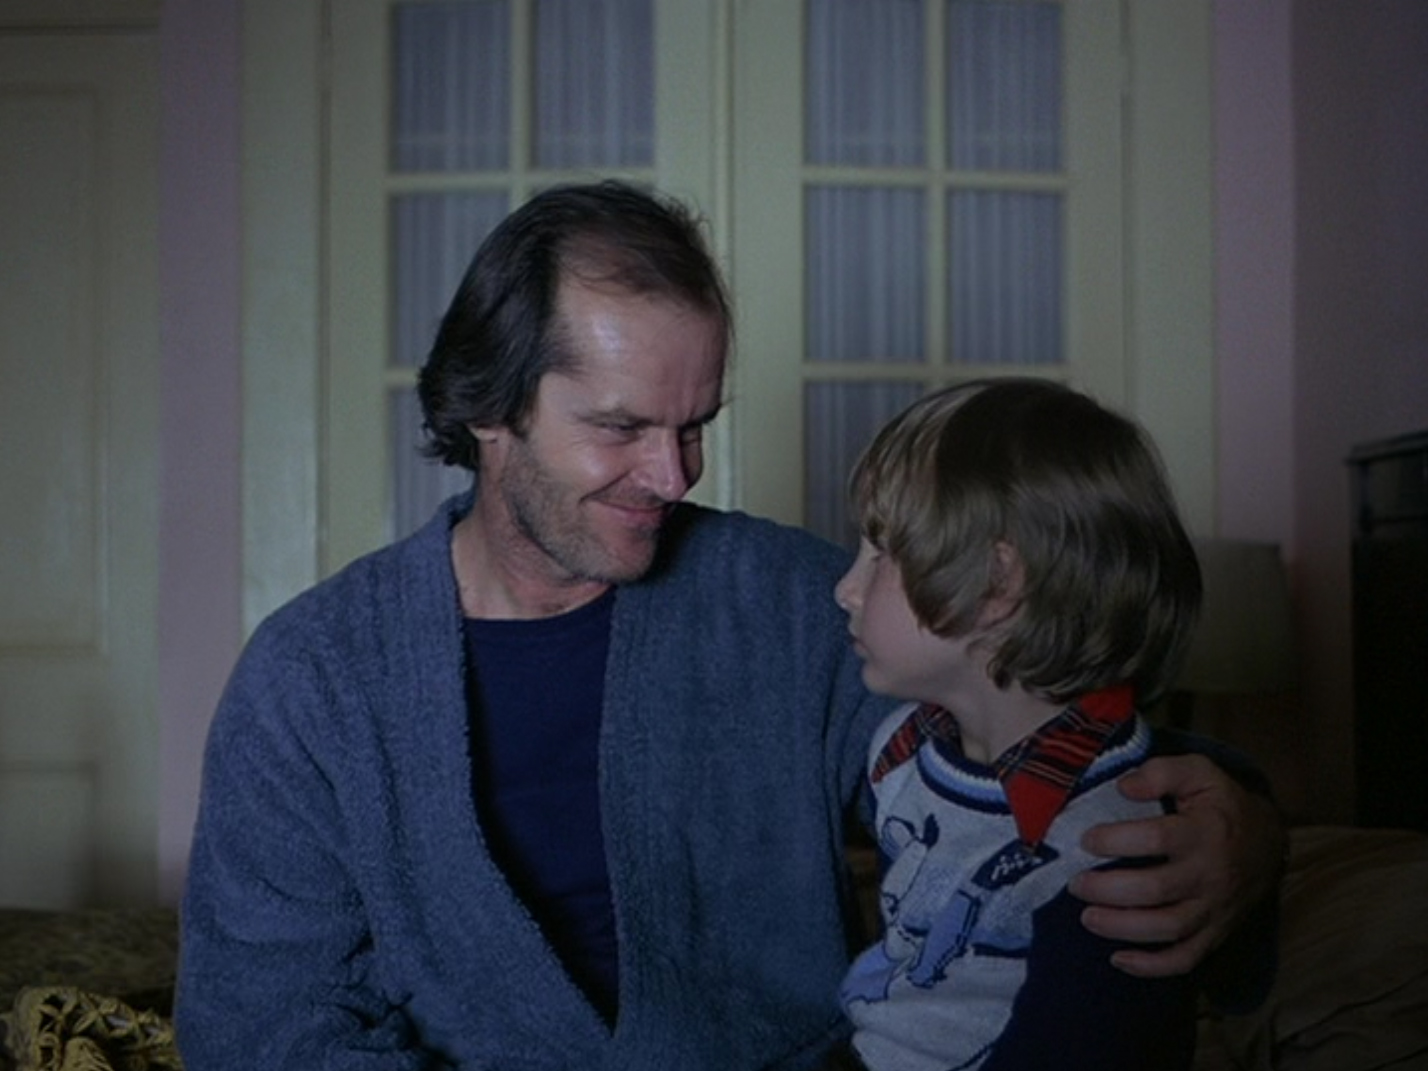 Go Behind The Terror Of The Shining With This Chillingly